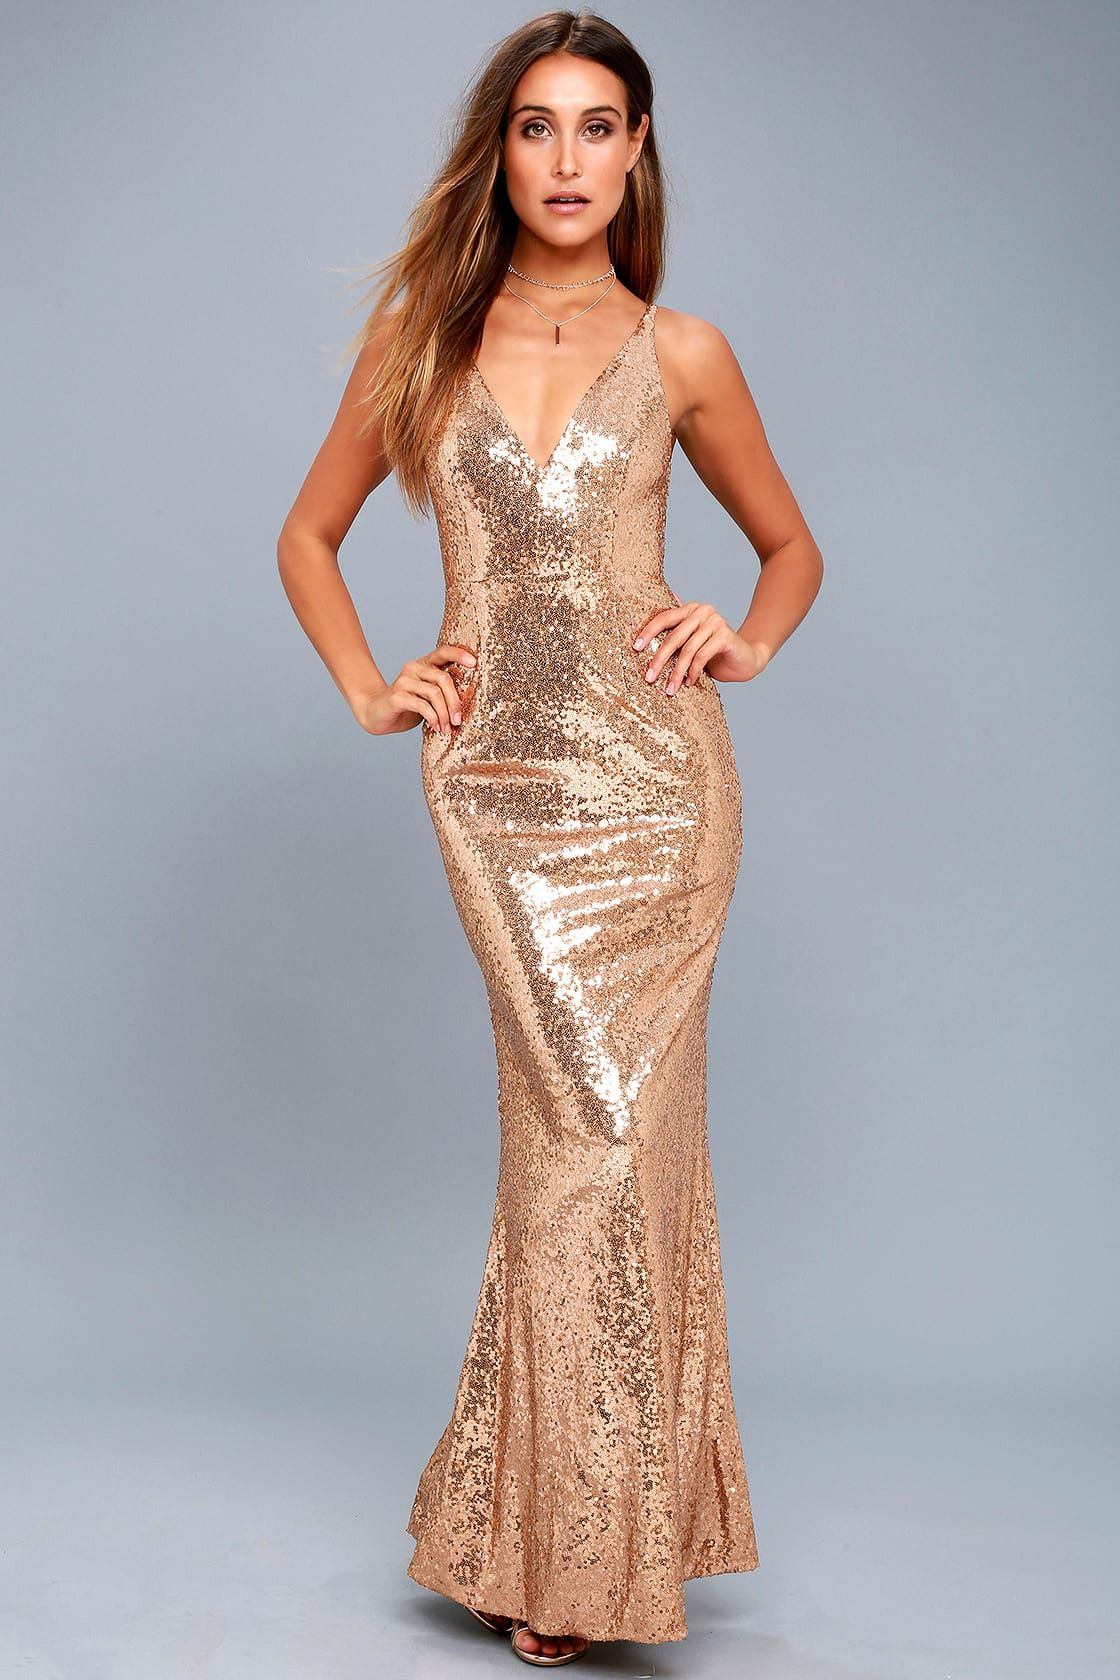 Here To Wow Gold Sequin Maxi Dress Sparkly Dress Gold Sequin Bridesmaid Dress Dresses [ 1680 x 1120 Pixel ]